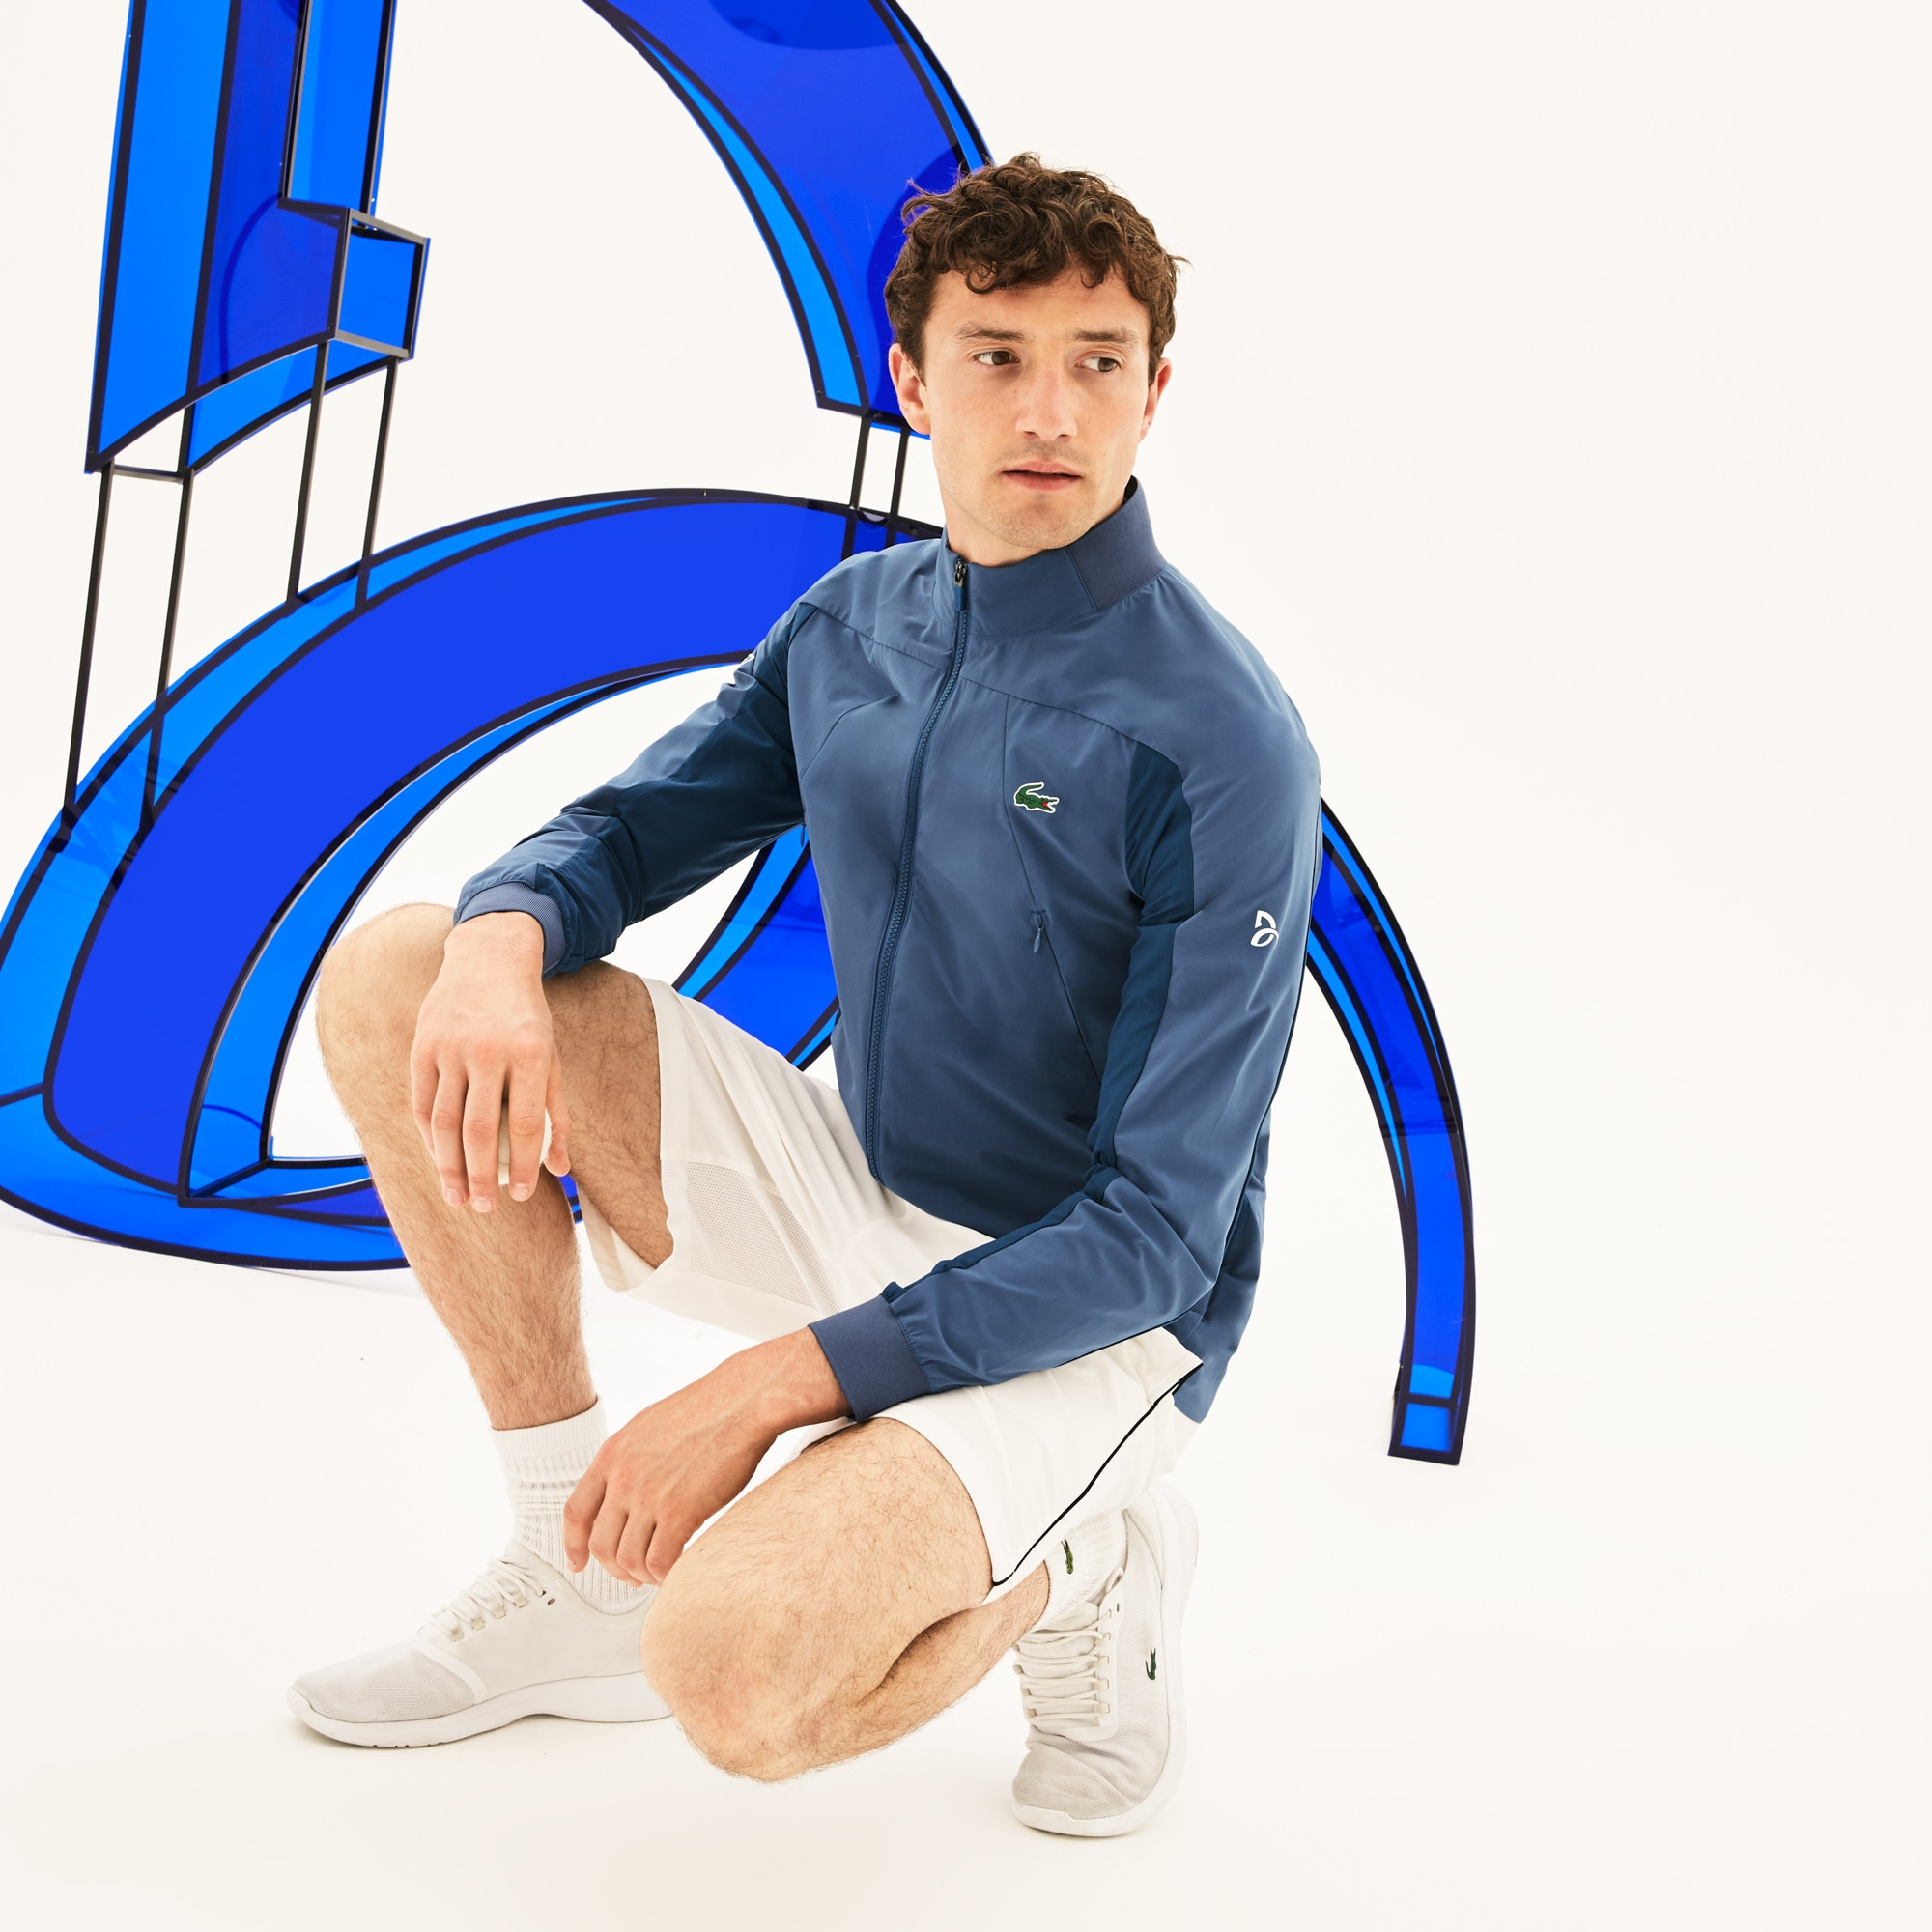 Men's Lacoste SPORT Novak Djokovic Support With Style - Off Court Collection Stand-Up Collar Taffeta Jacket